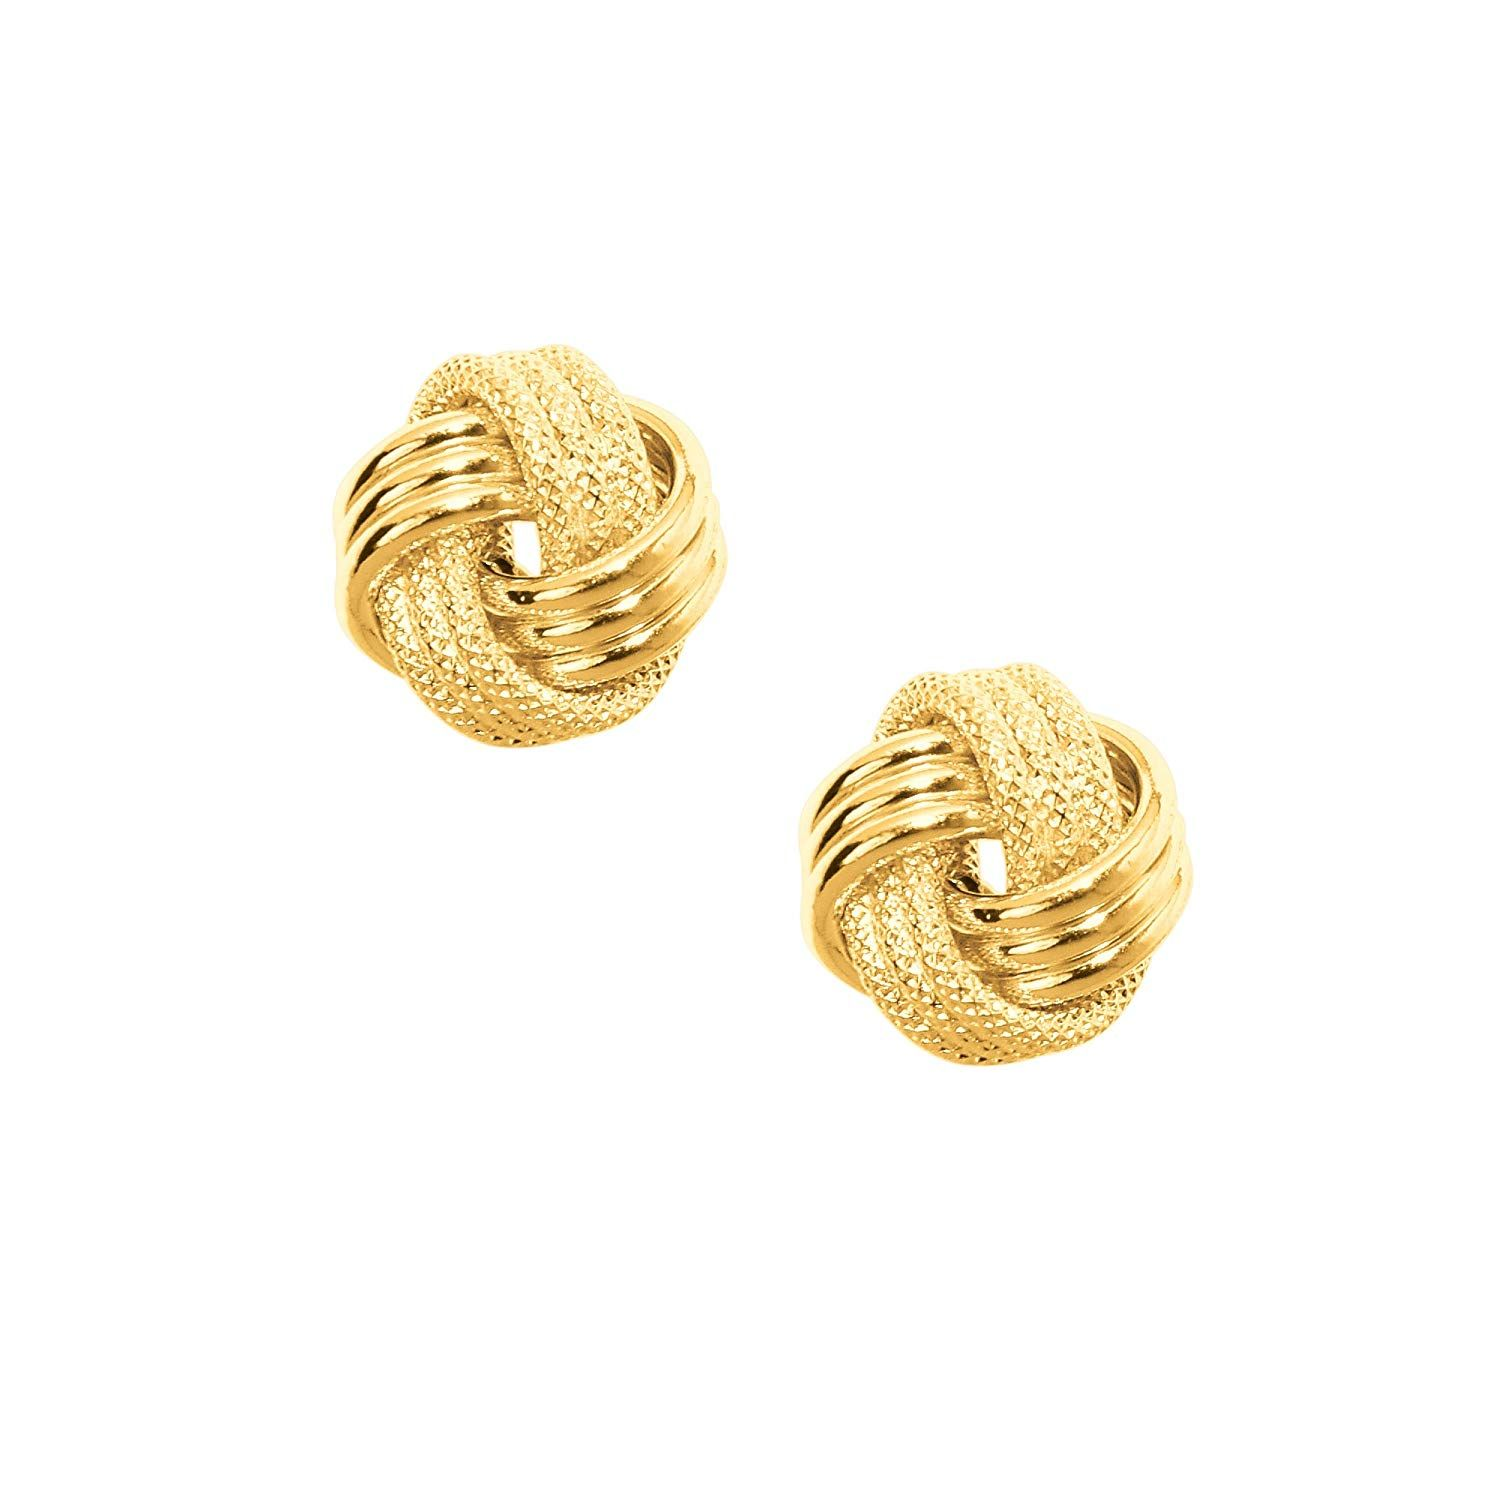 Mcs Jewelry 10 Karat Yellow Gold Triple Row Love Knot Earrings 9 Mm Diameter Knot Stud Earrings Gold Earrings Studs Stud Earrings